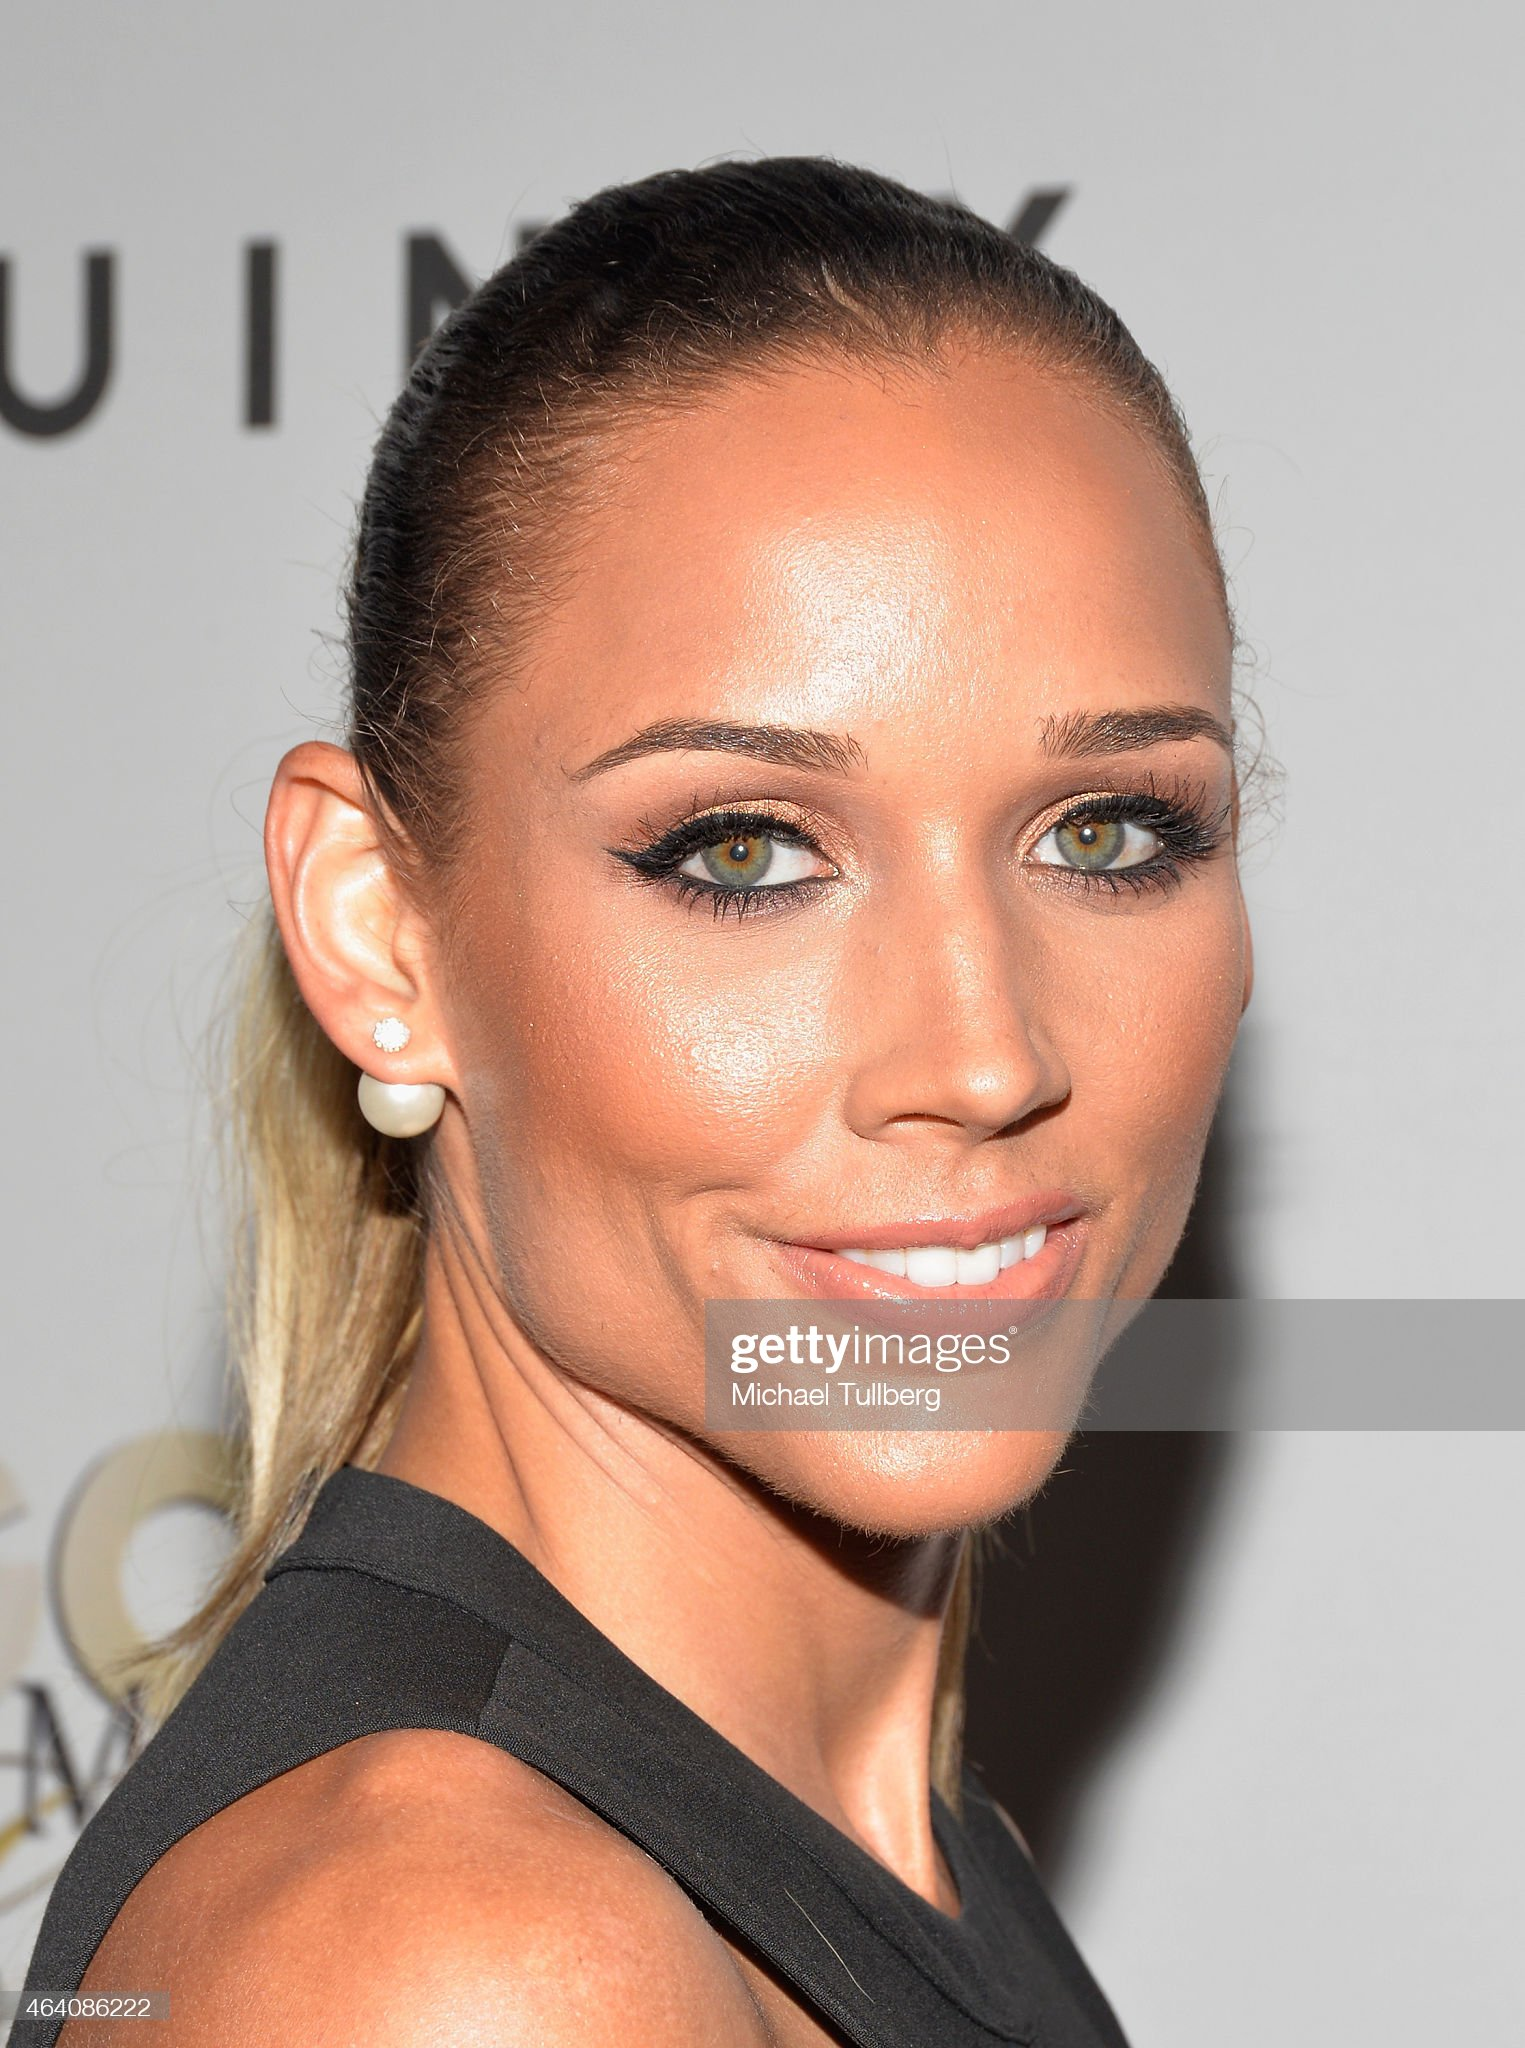 Ojos verdes - Famosas y famosos con los ojos de color VERDE Olympic-hurdler-lolo-jones-attends-the-3rd-annual-gold-meets-golden-picture-id464086222?s=2048x2048